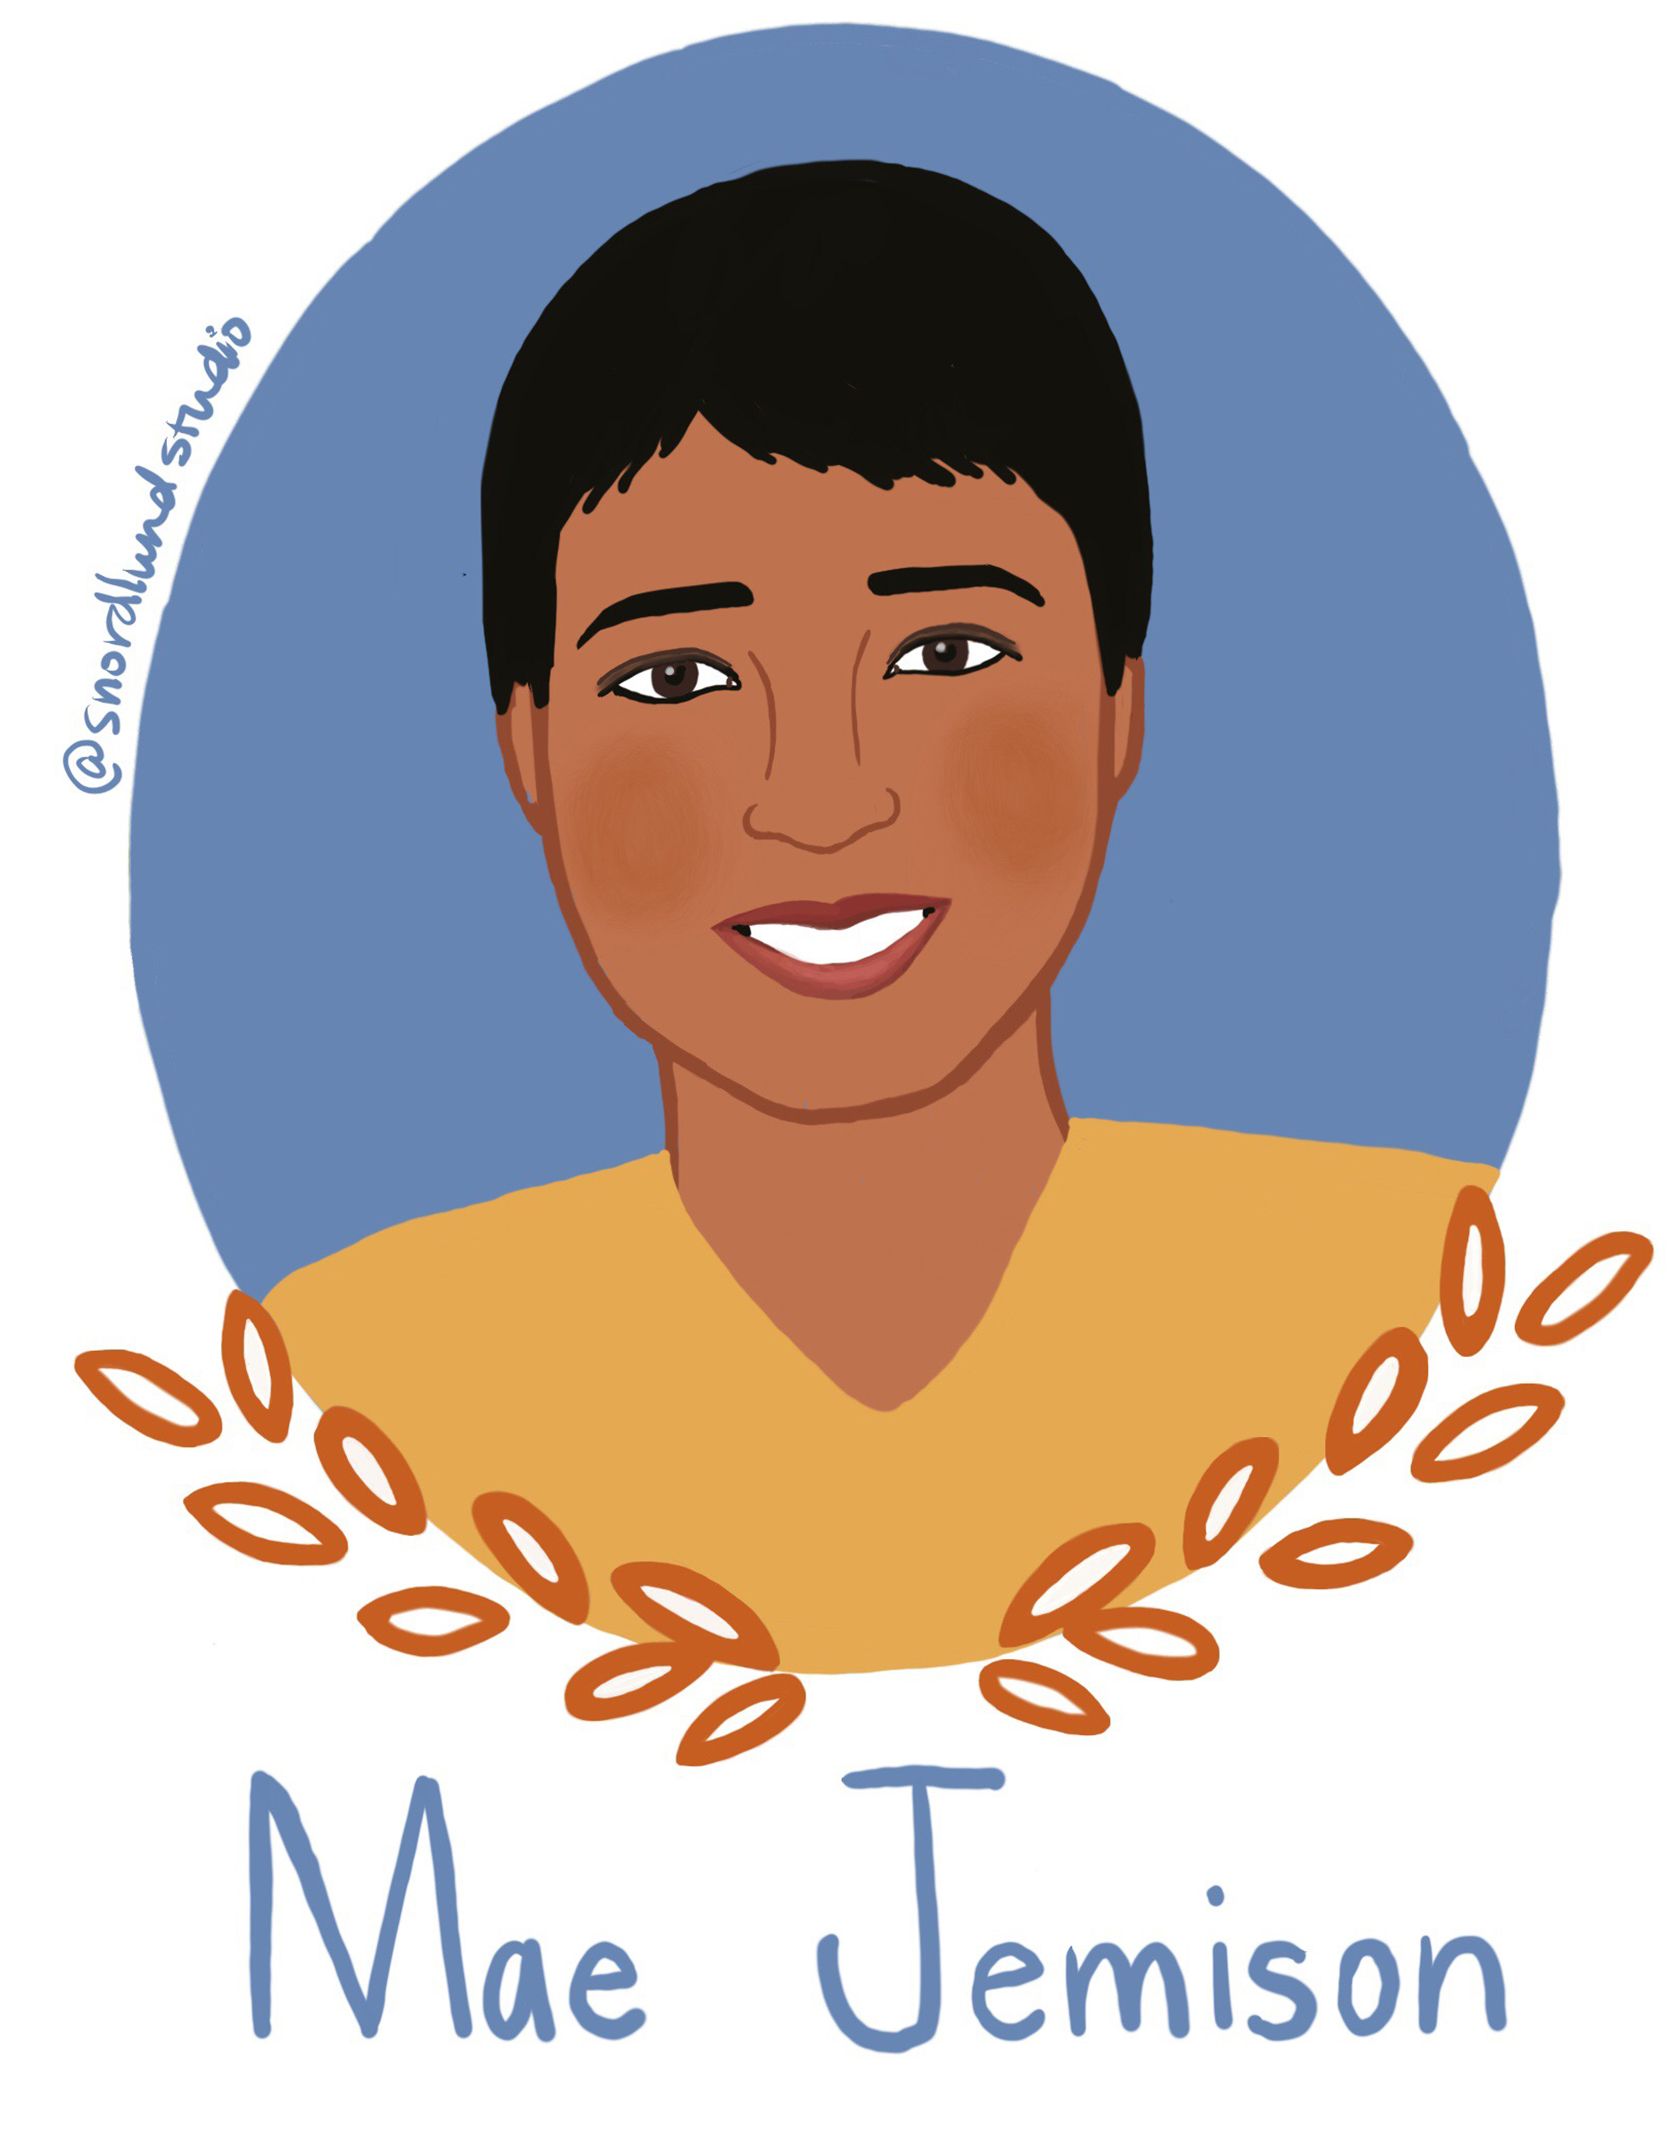 24. Mae Jemison - Mae Jemison is an engineer, doctor, and astronaut. Jemison was the first African-American woman in space. In addition, she's acted, including on Star Trek. Jemison is also a dancer. She choreographed a musical as a student at Stanford, took classes while at Cornell Medical College, and later built a home dance studio. Jemison strongly believes her dance background helped prepare her for her time in space, and that art and science go hand and hand.